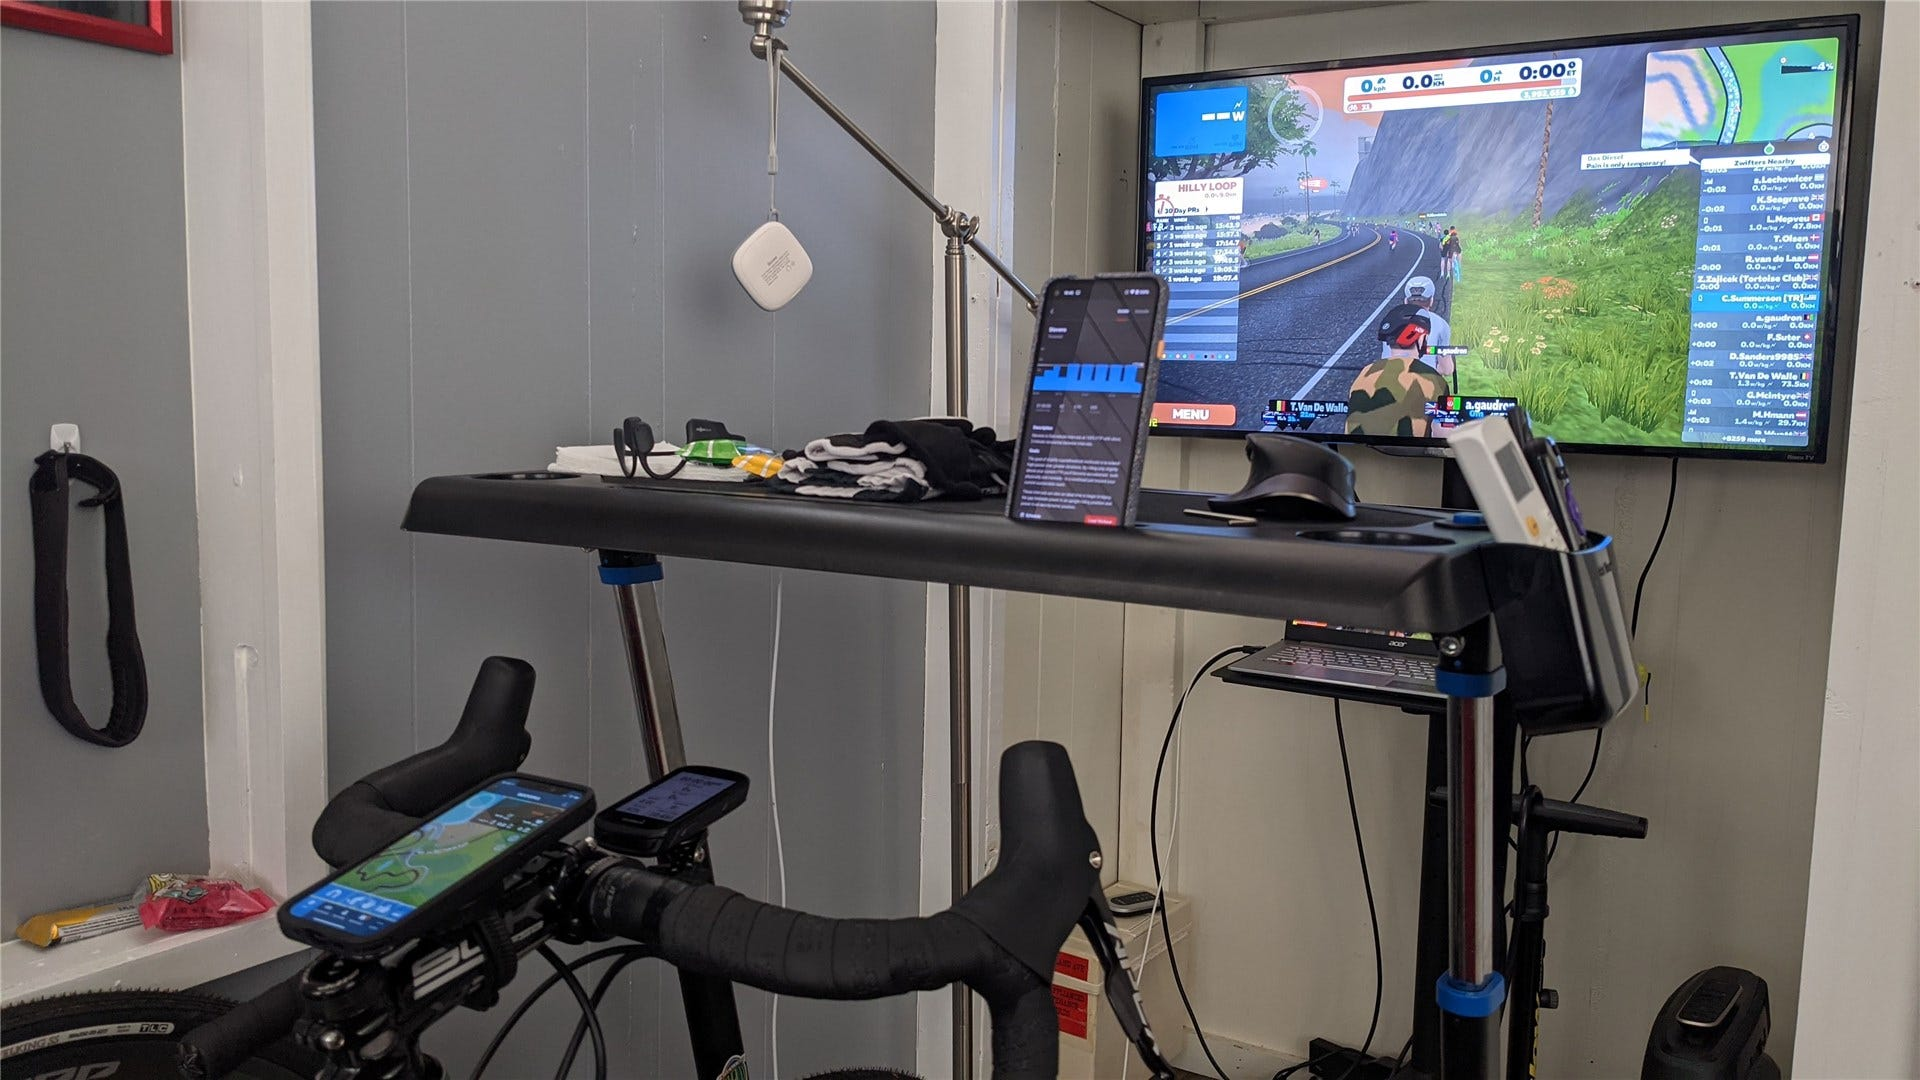 An indoor training setup with Zwift on a TV, TrainerRoad on a phone, and Gearlock holding an iPhone with the Zwift companion app.